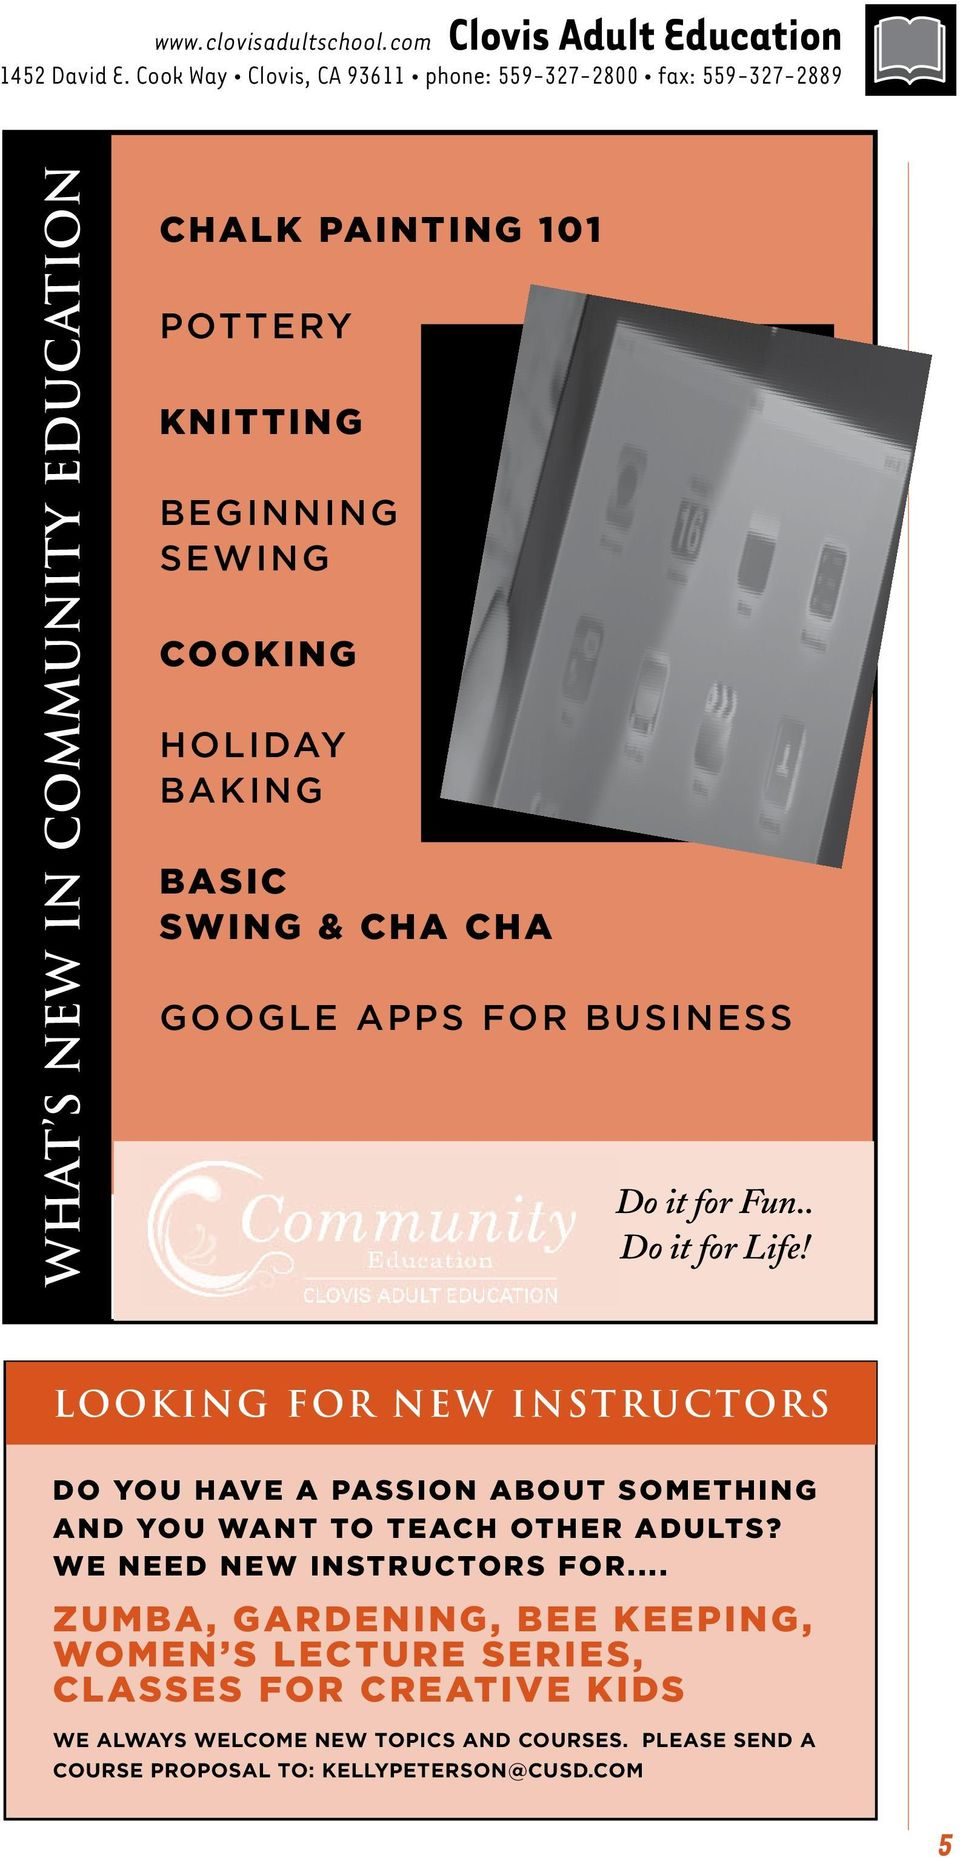 Cooking Holiday Baking Basic Swing & Cha Cha Google Apps for Business Do it for Fun.. Do it for Life!